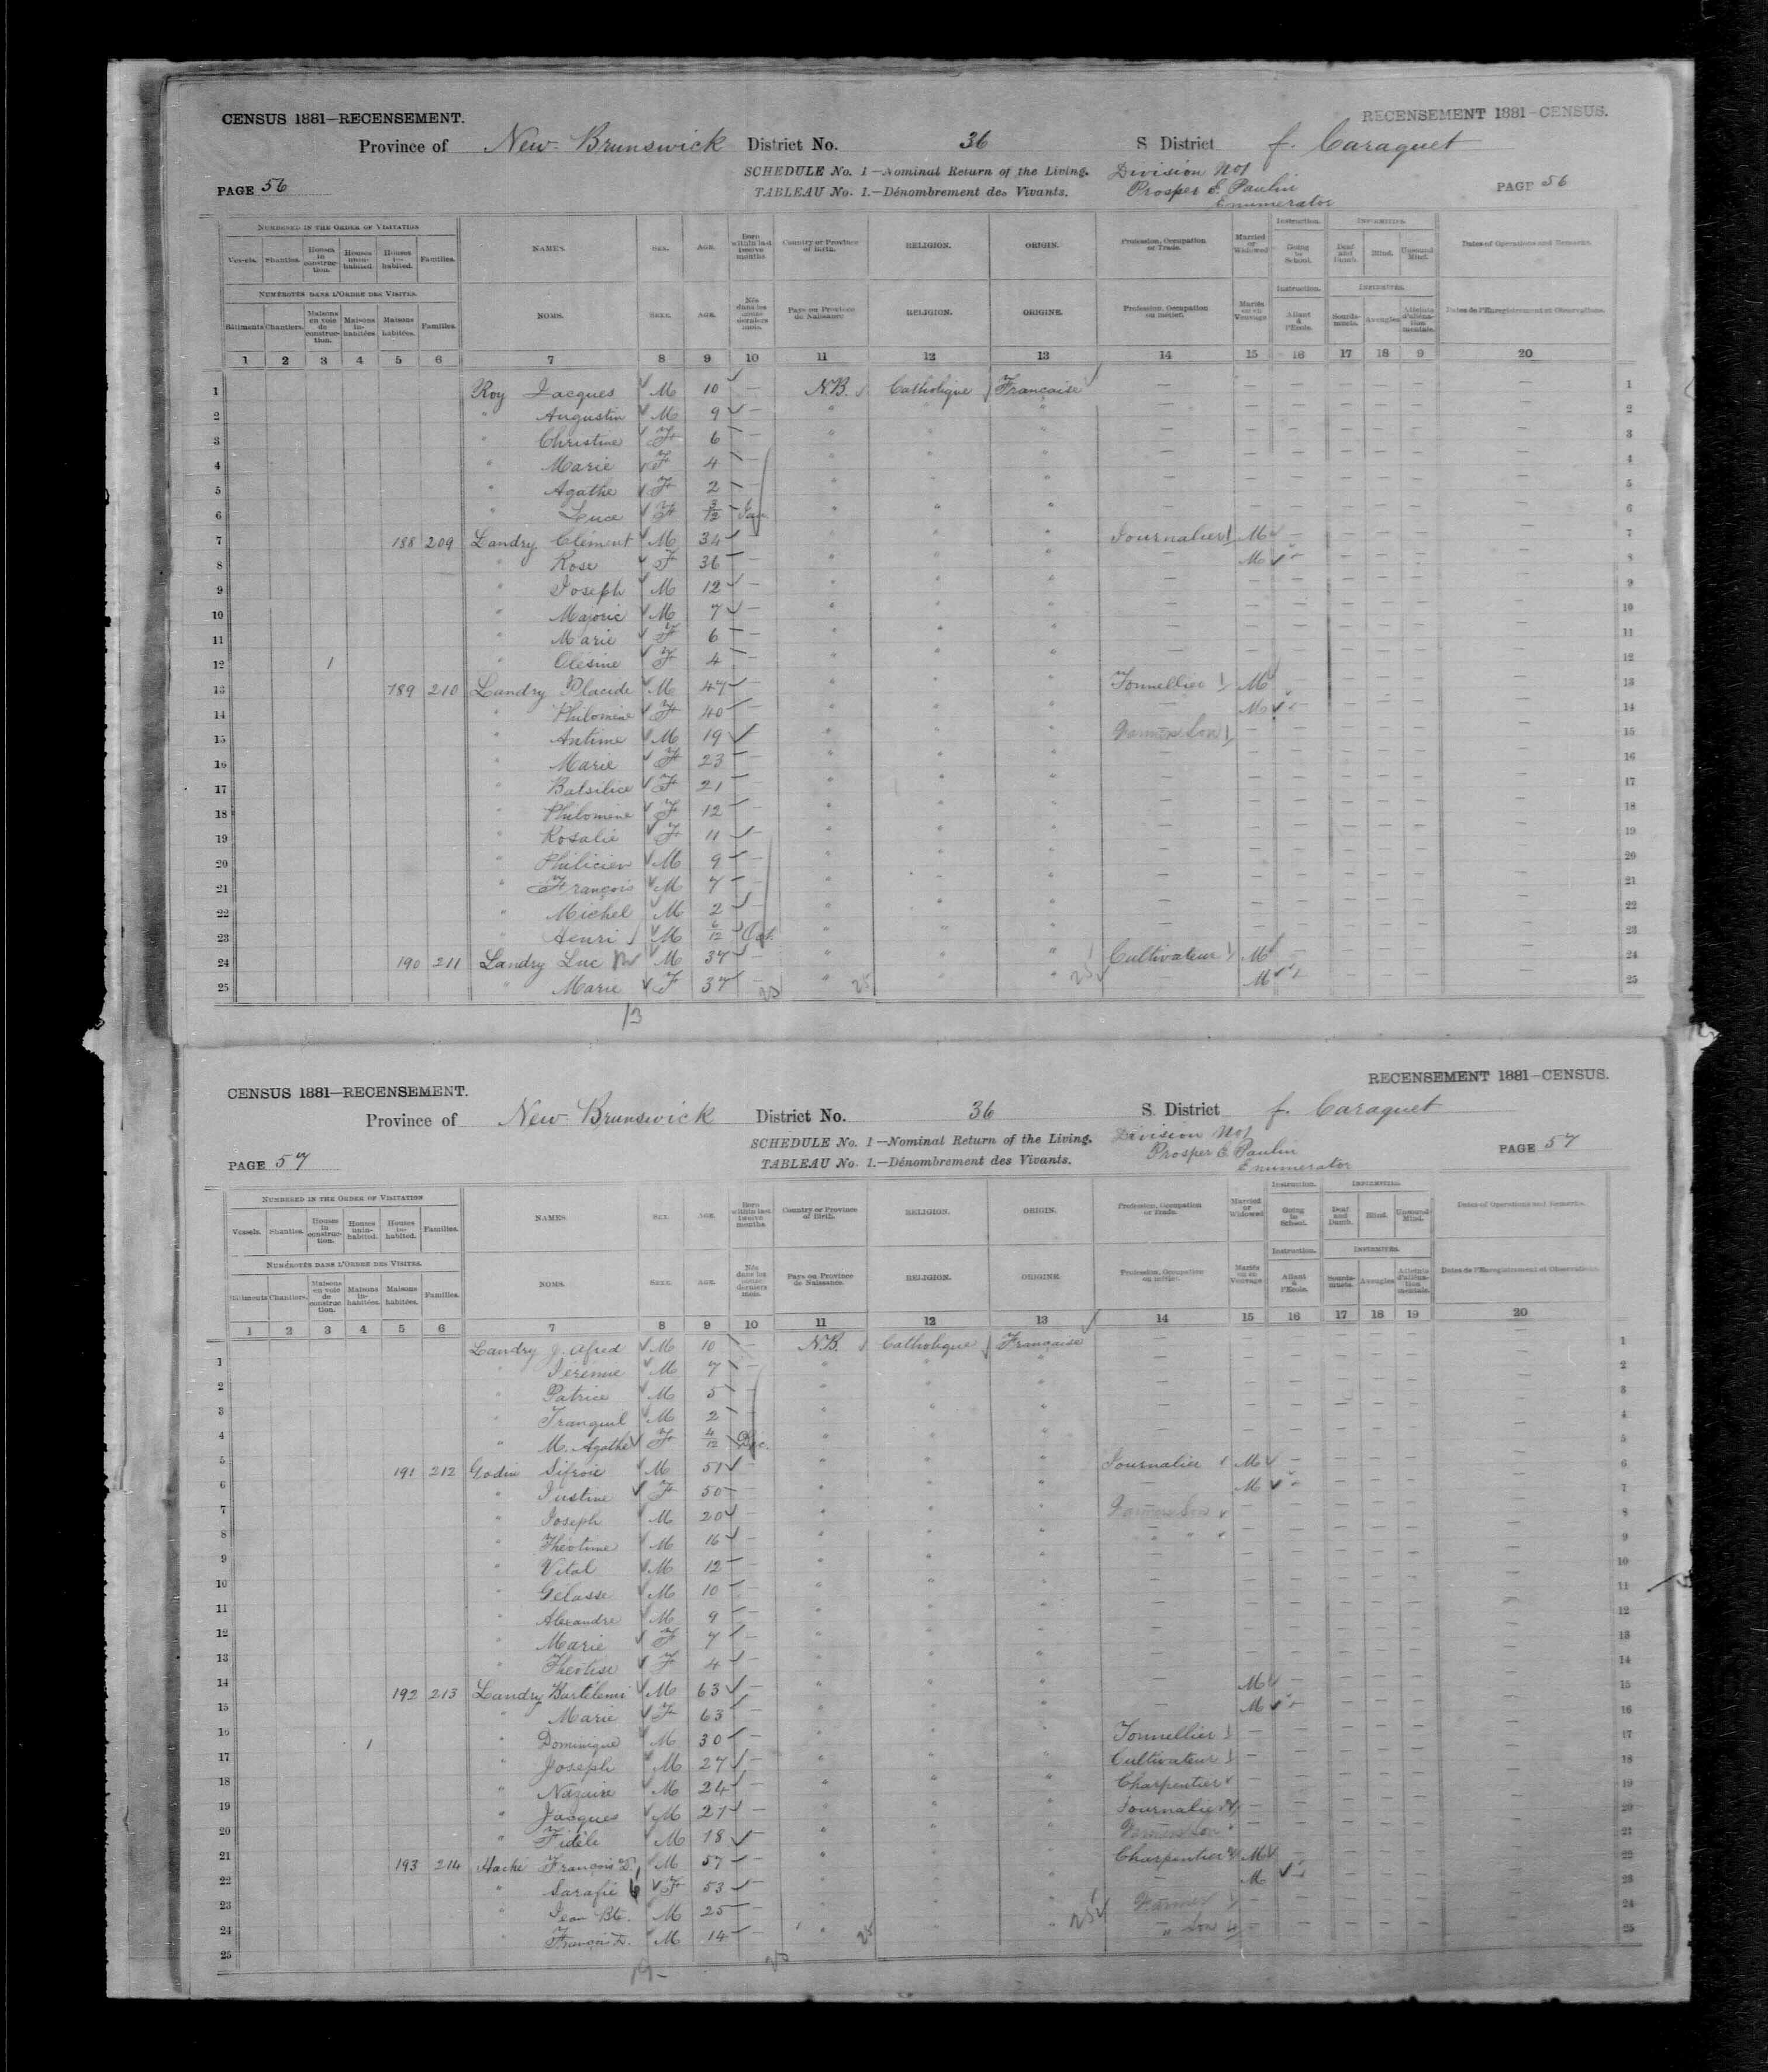 Digitized page of Census of Canada, 1881, Page number 57, for Francois D. HACHE